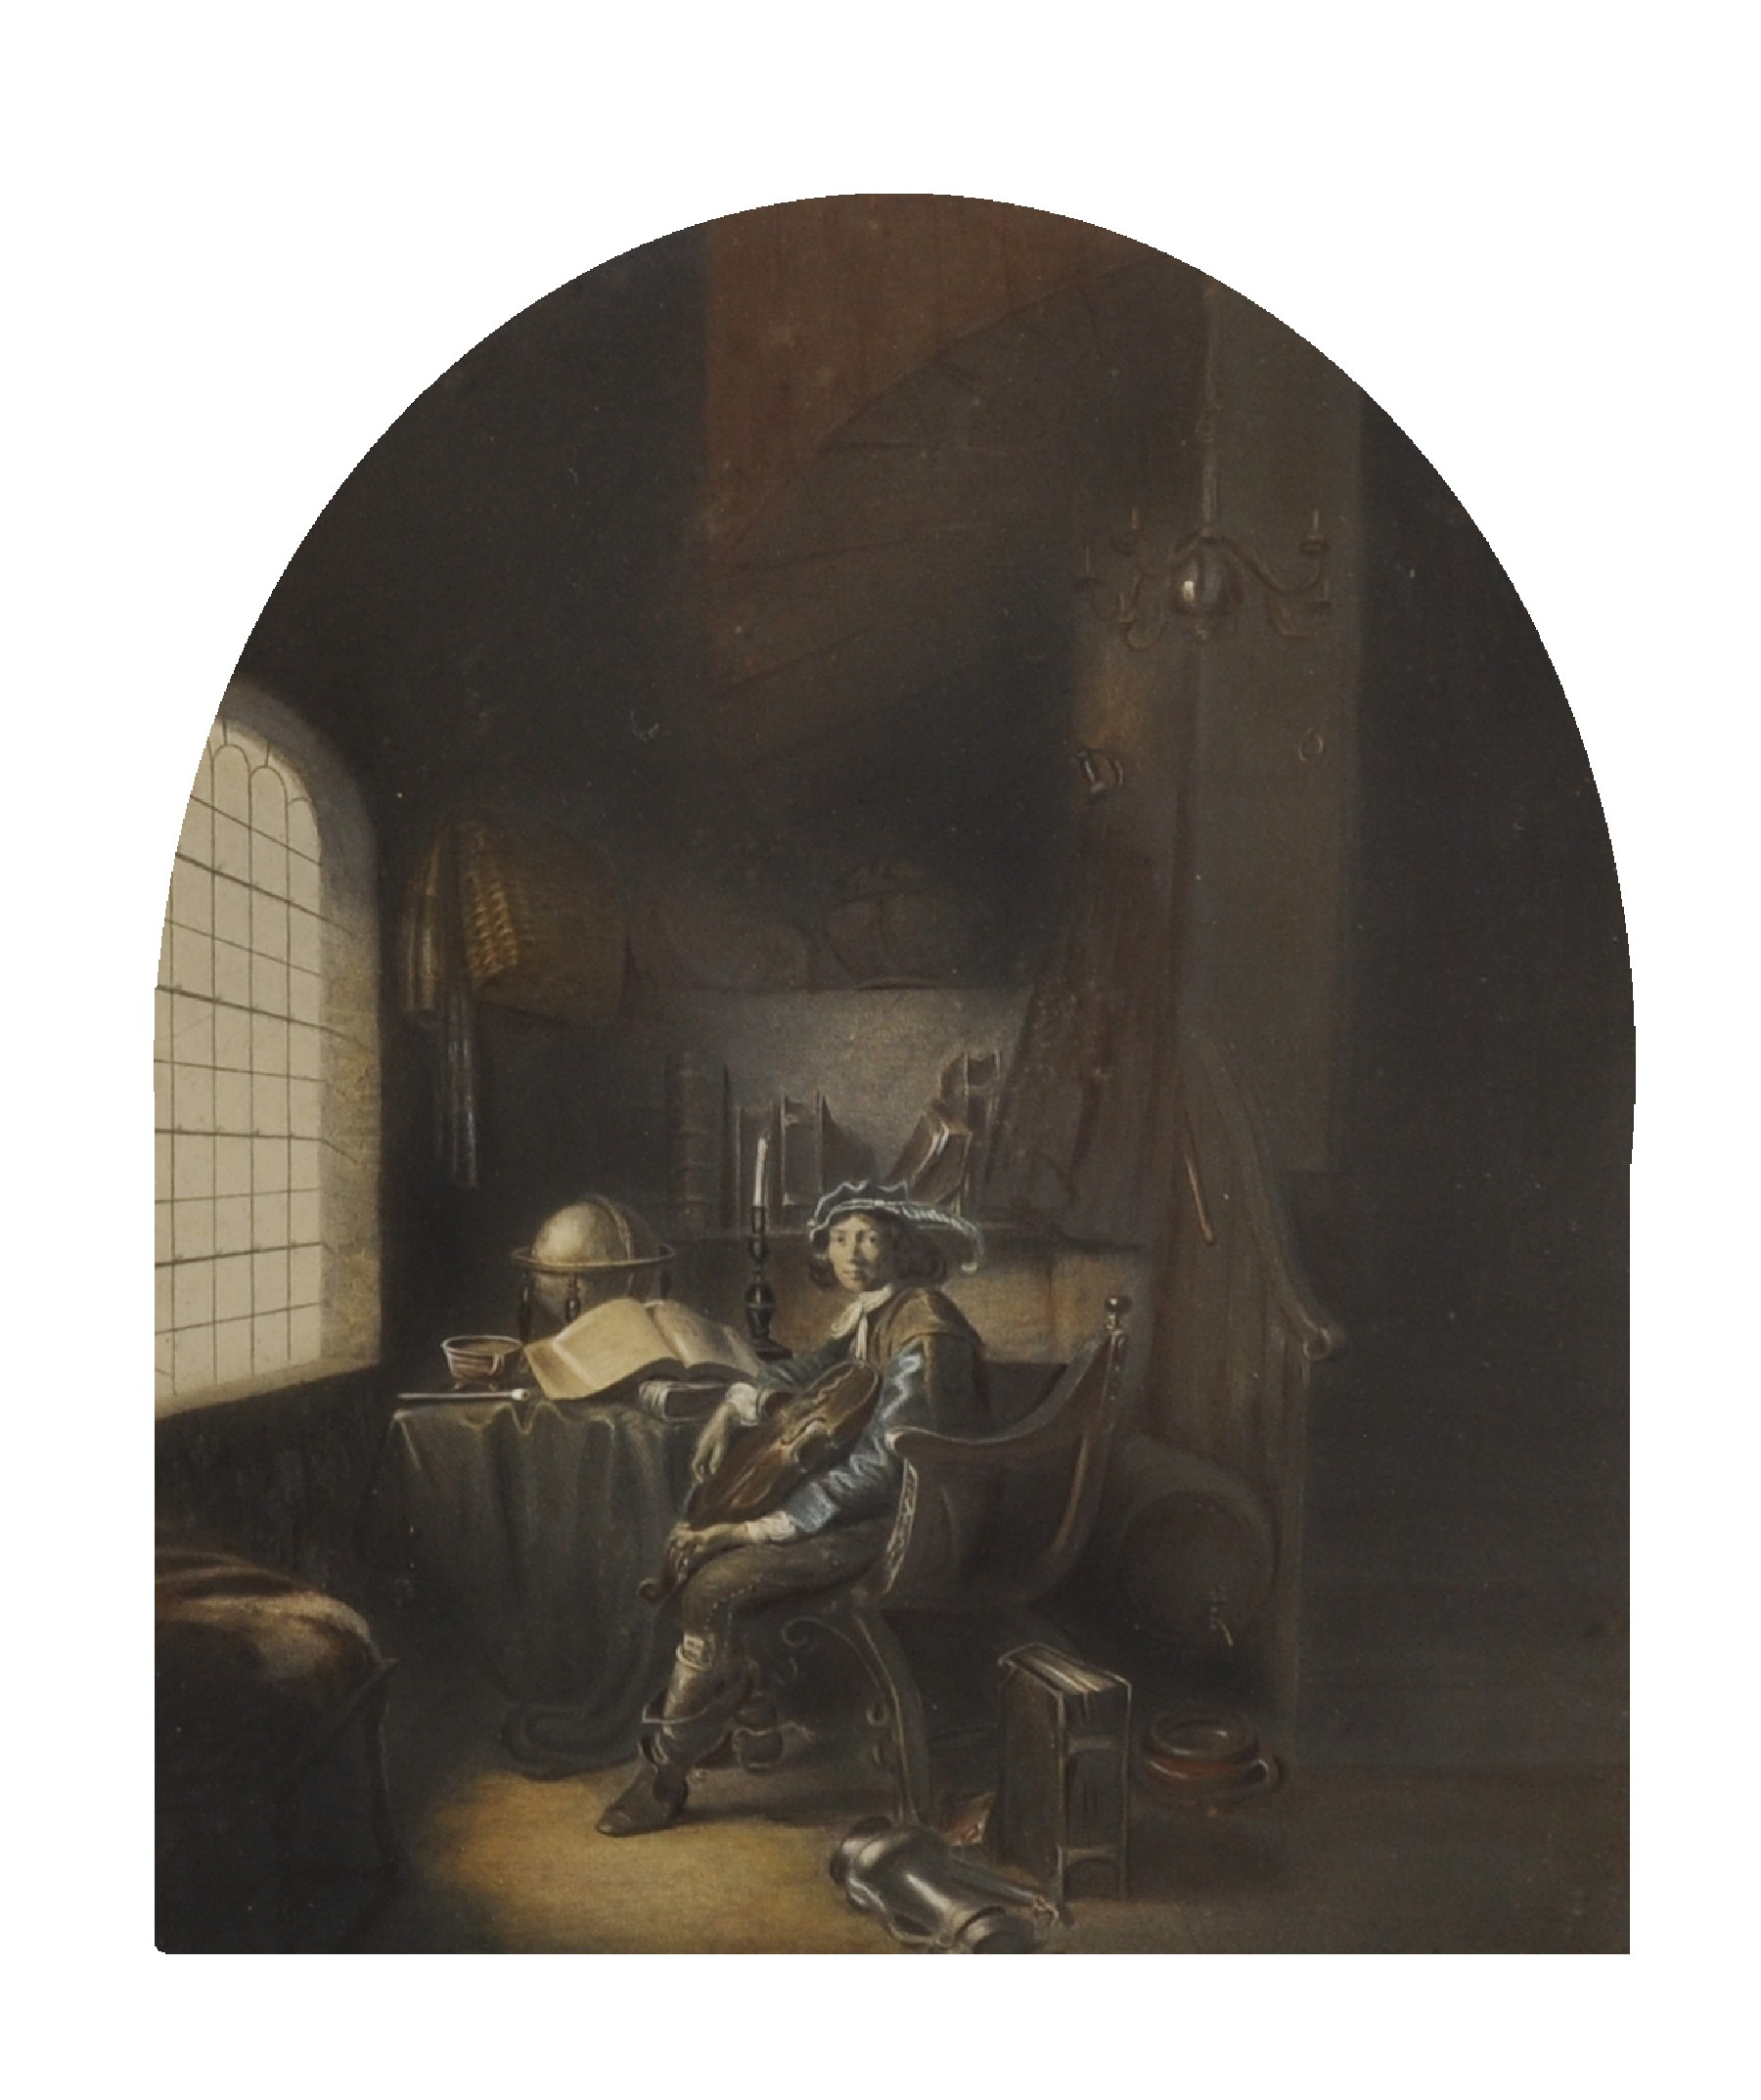 "After Gerrit Dou (1613-1675) Dutch. ""The Young Violinist"", Print, Arched, 11.5"" x 9""."